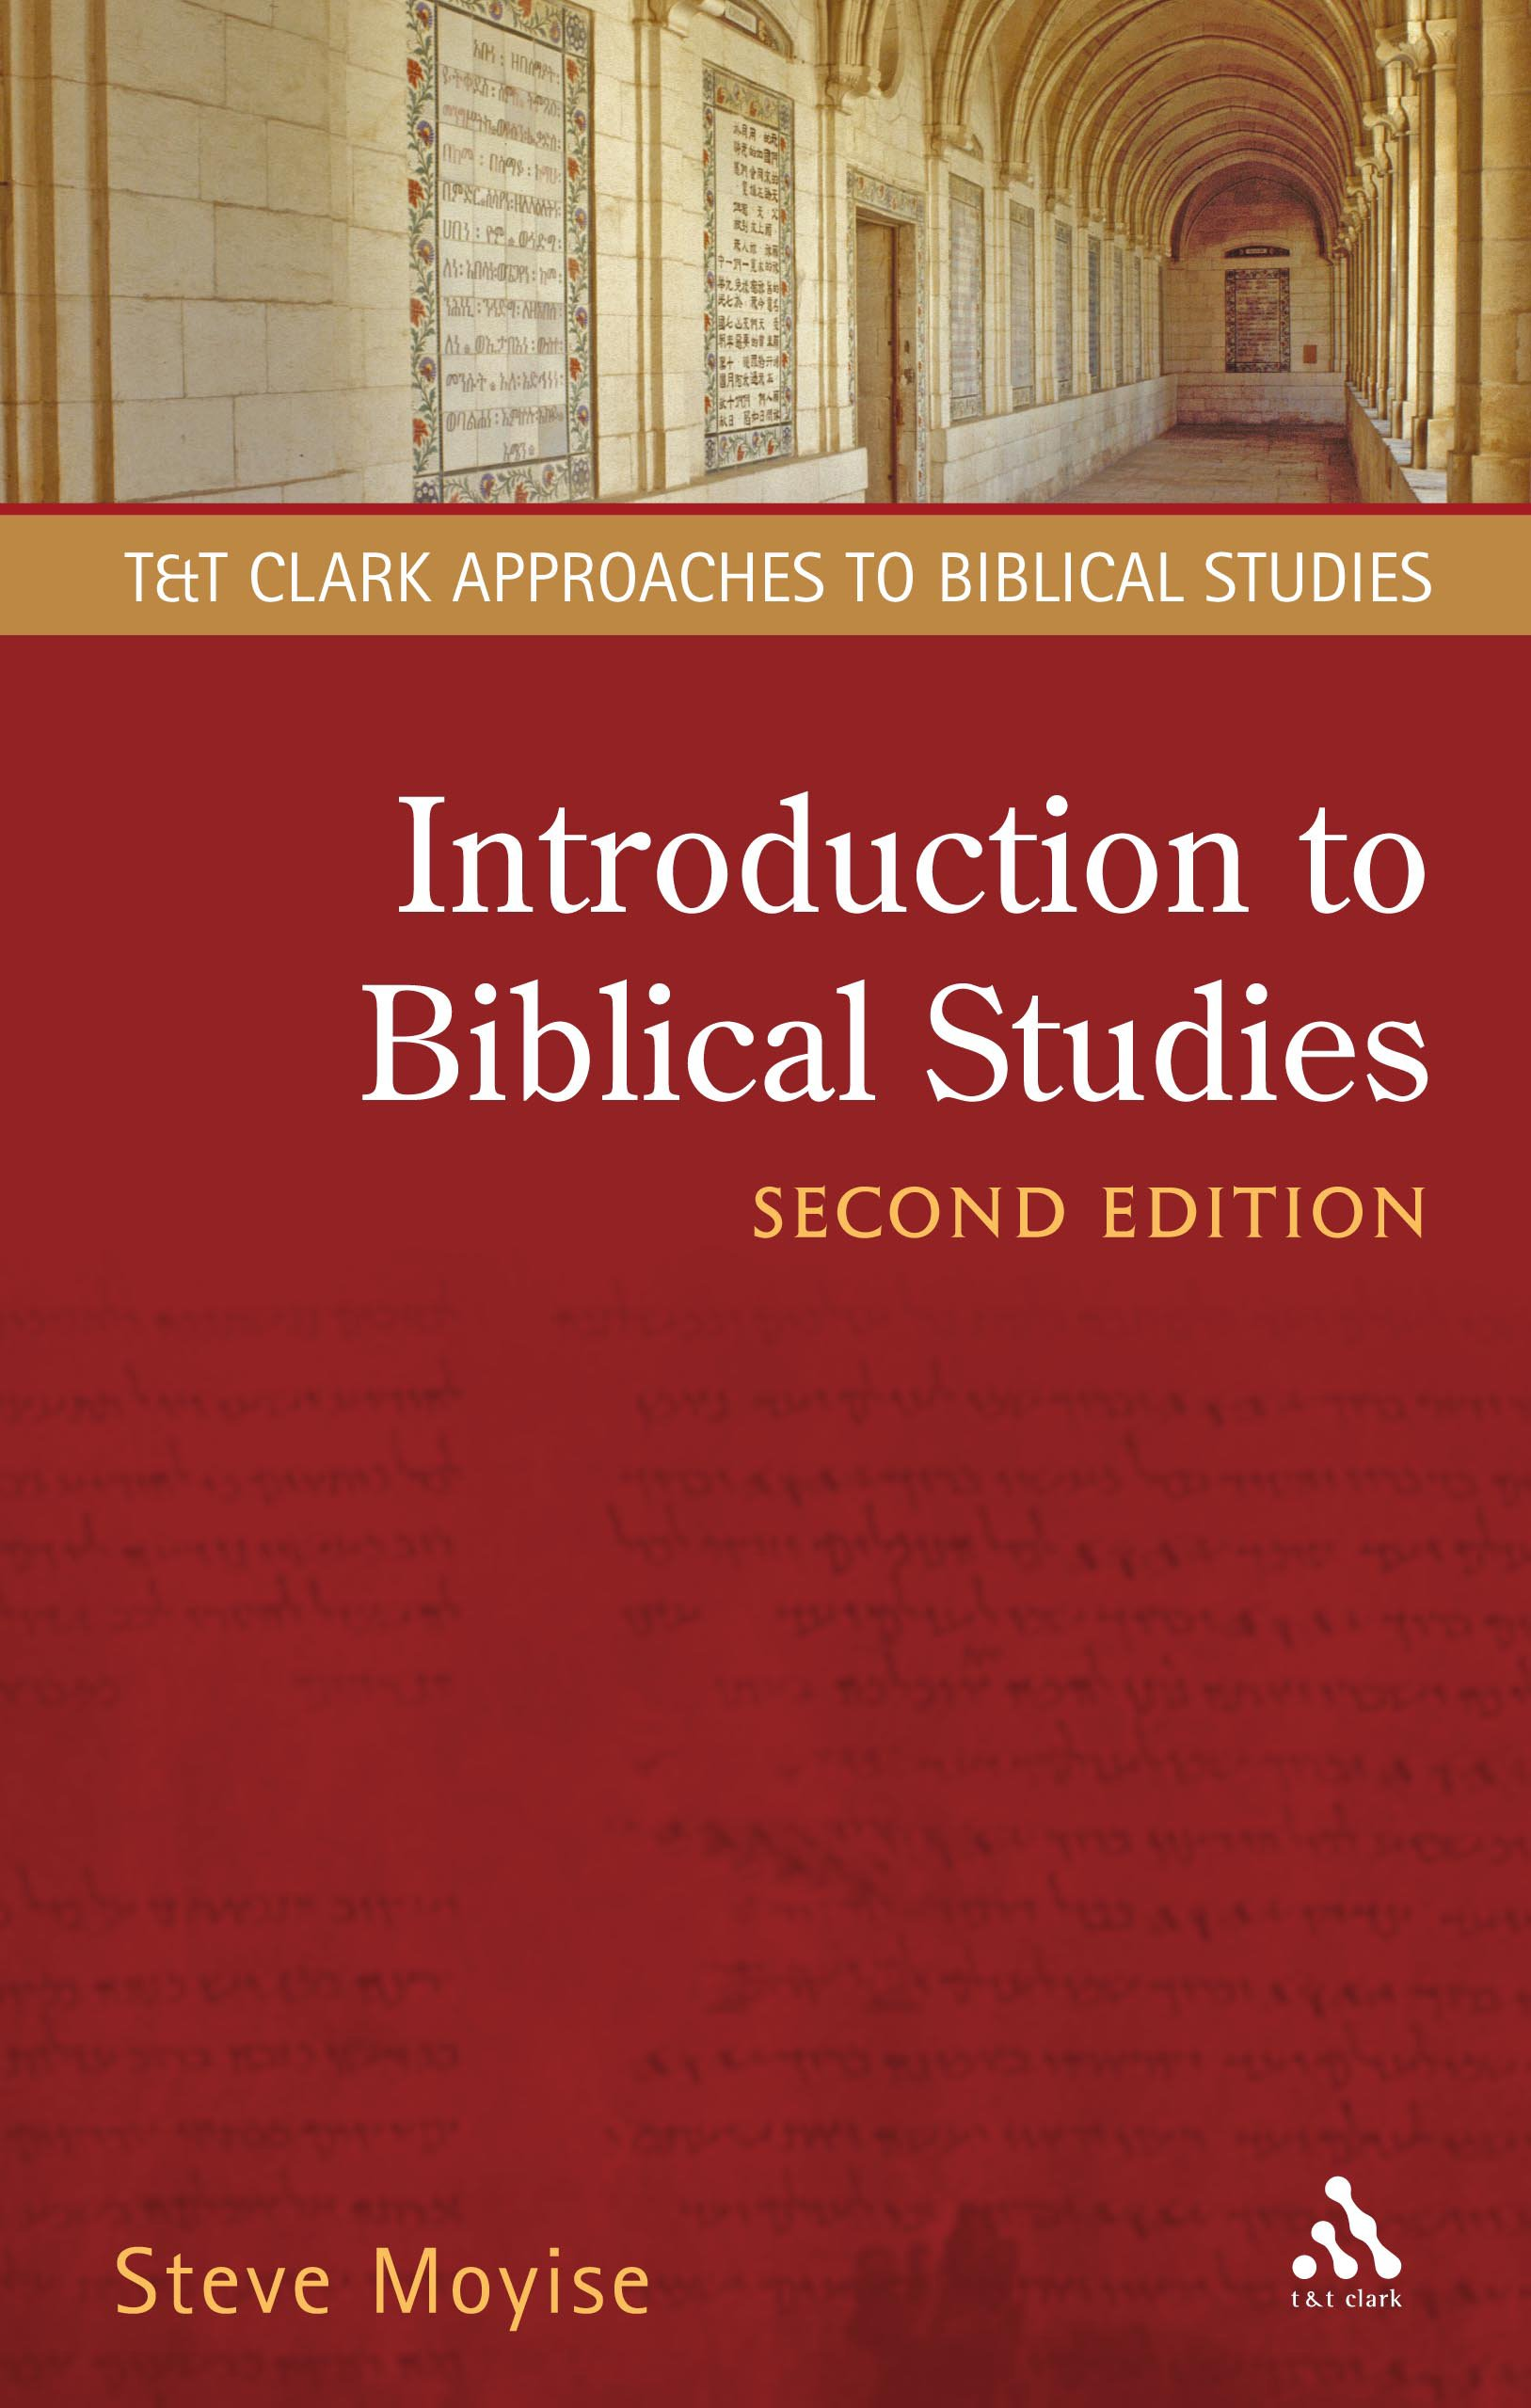 RELI 230-INTRODUCTION TO BIBLICAL STUDIES